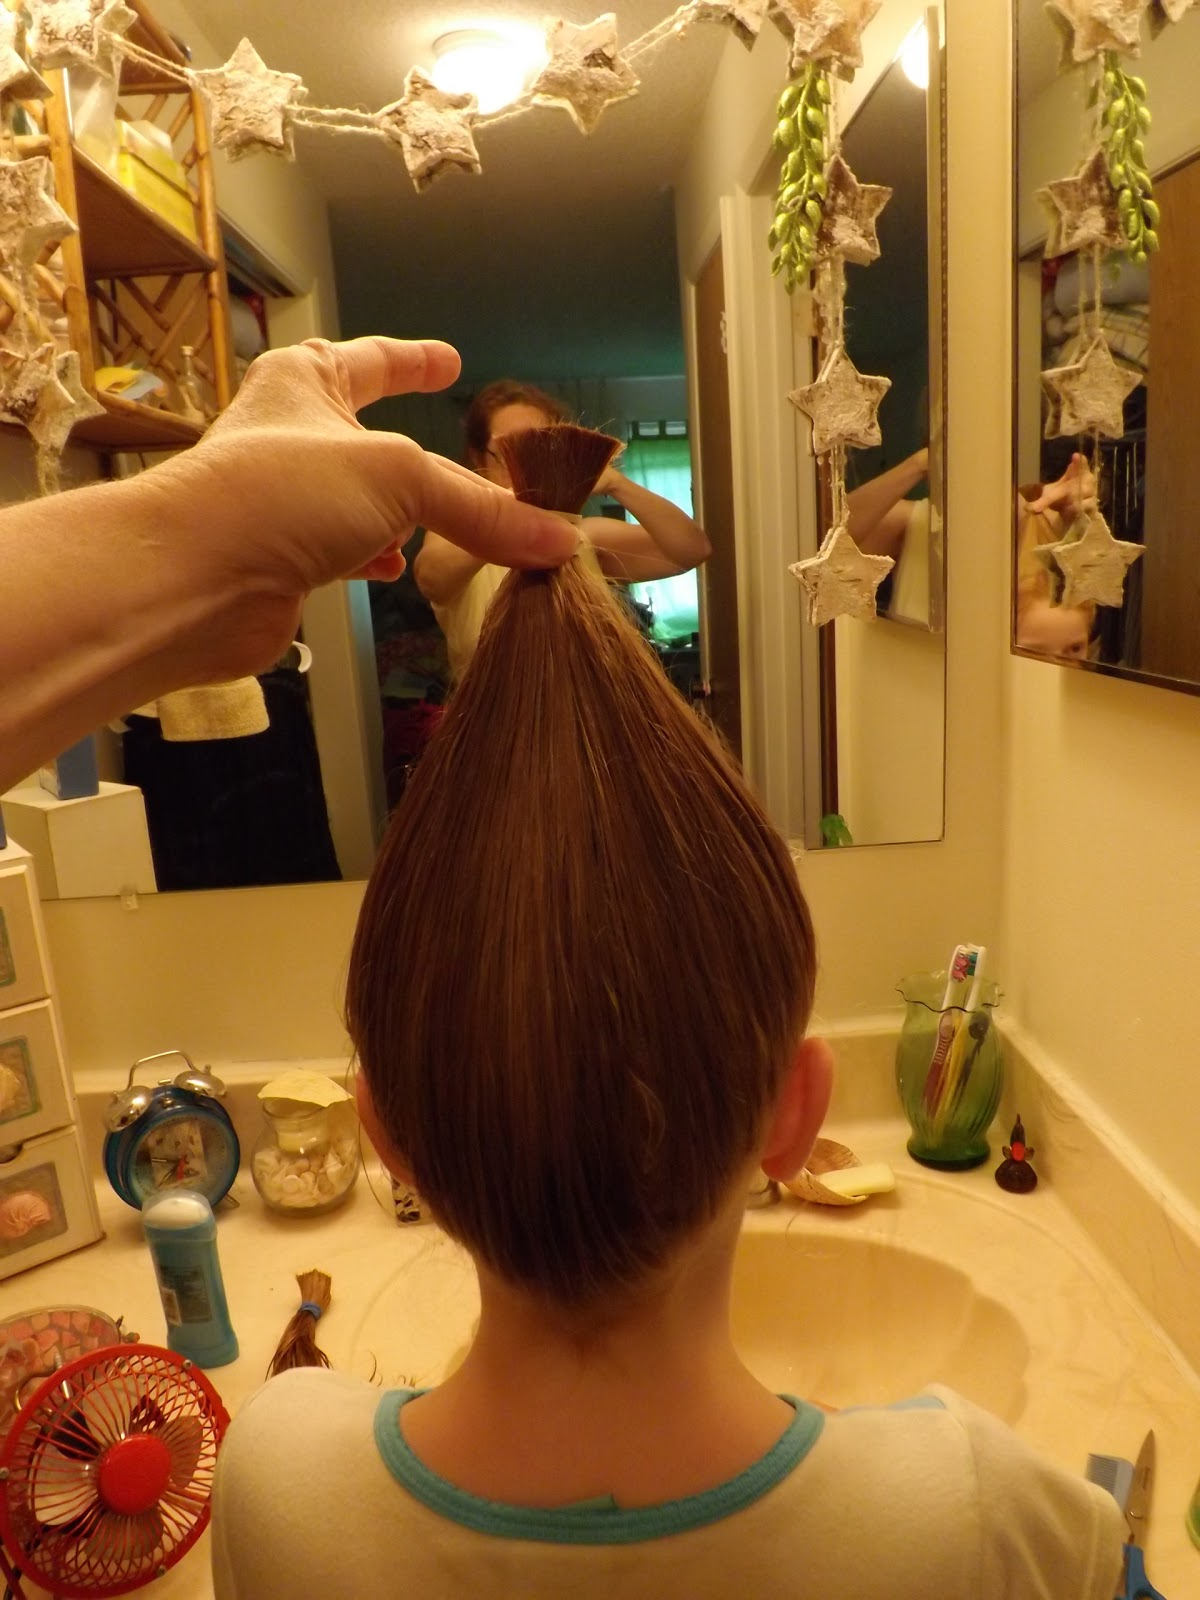 little further down & cut in between them. This is after the cut